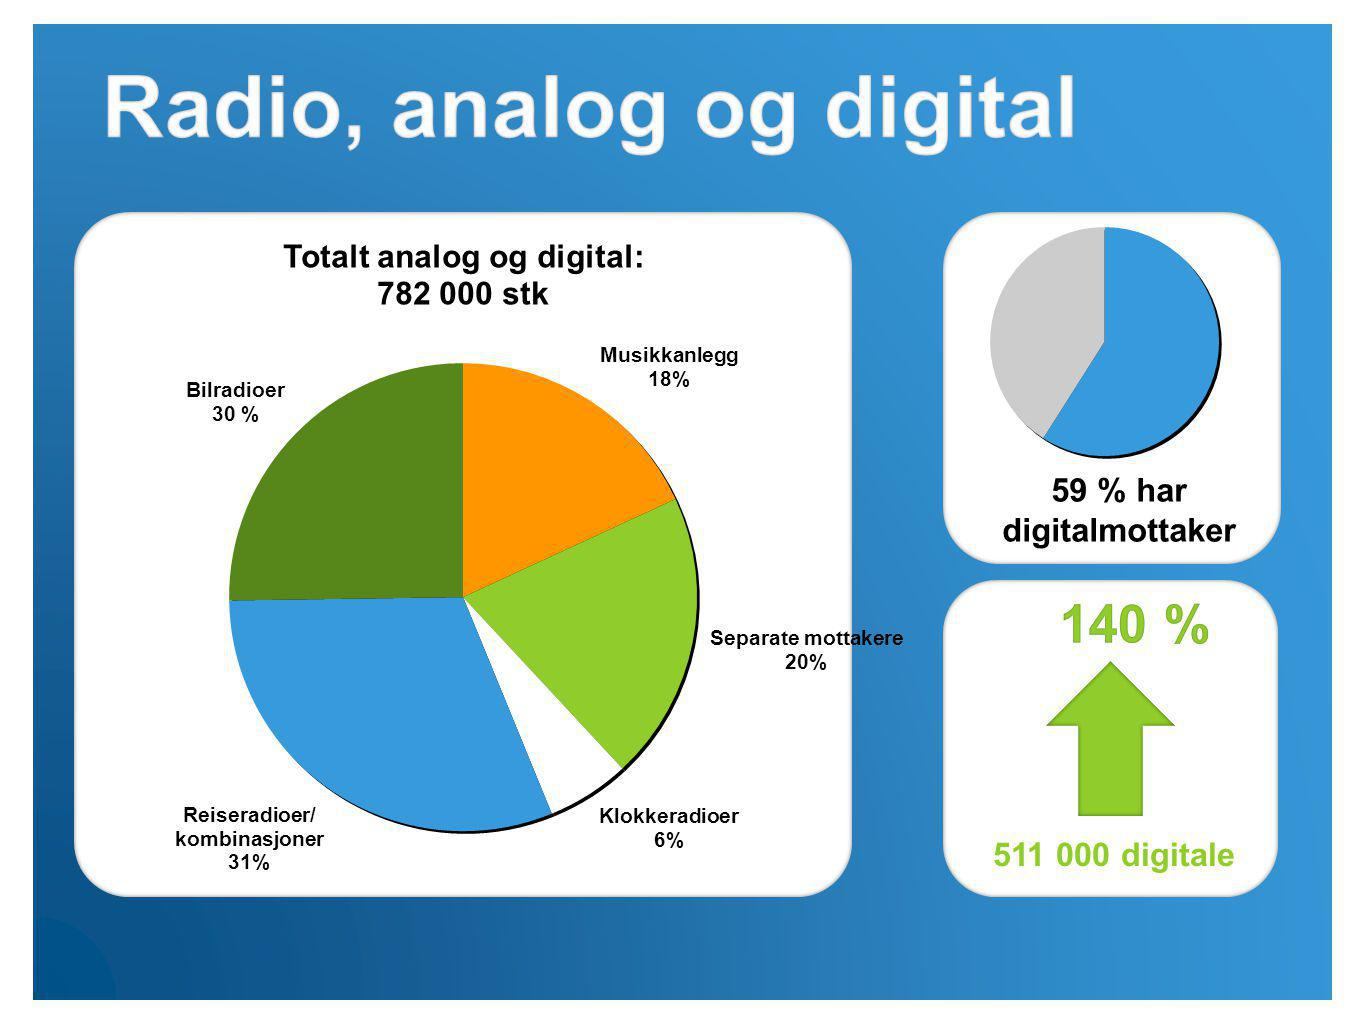 digitale 59 % har digitalmottaker